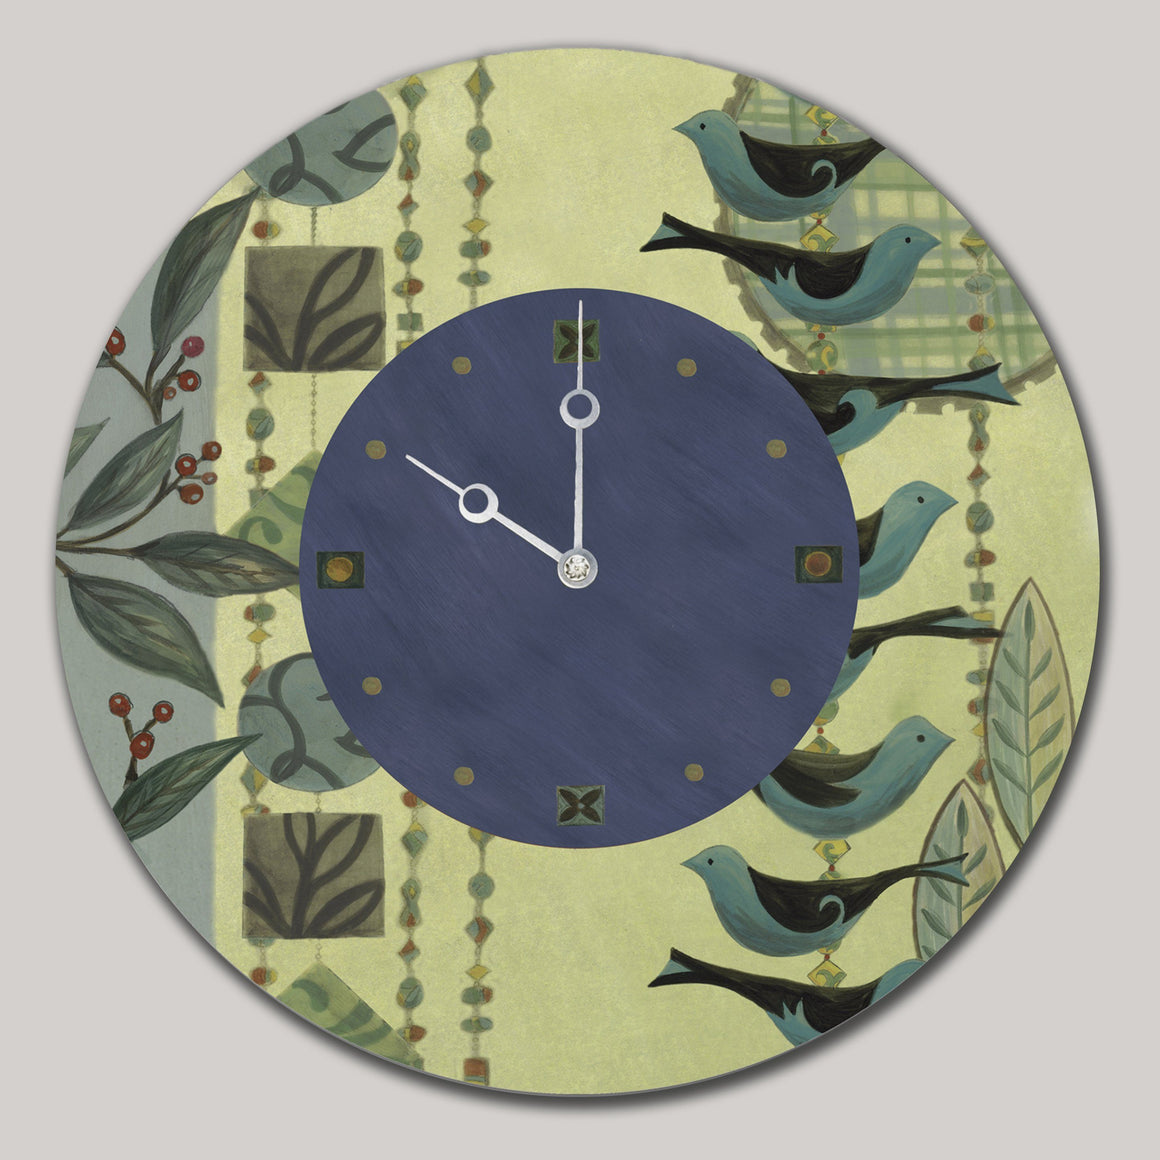 Round Wall Clock in New Capri Periwinkle